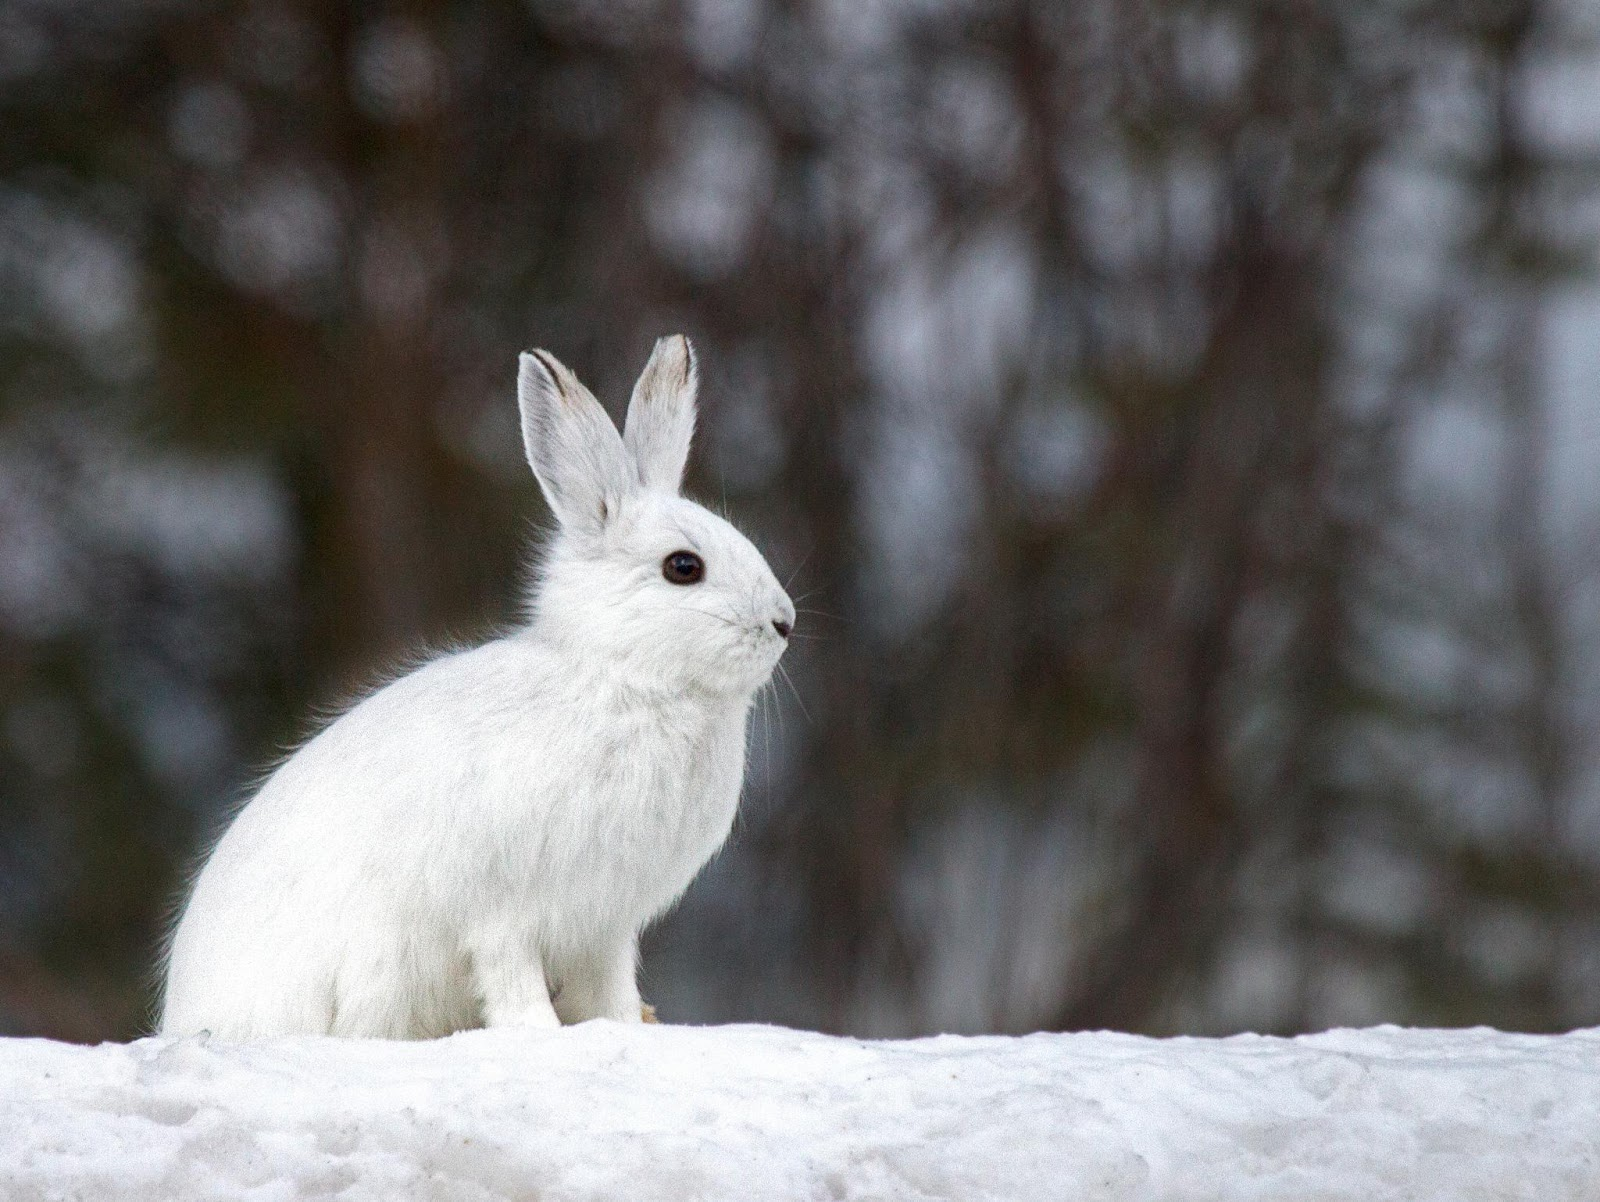 Cute White Baby Rabbits Wallpapers So Cute Rabbit 1080p Hd Wallpaper And Images Hd